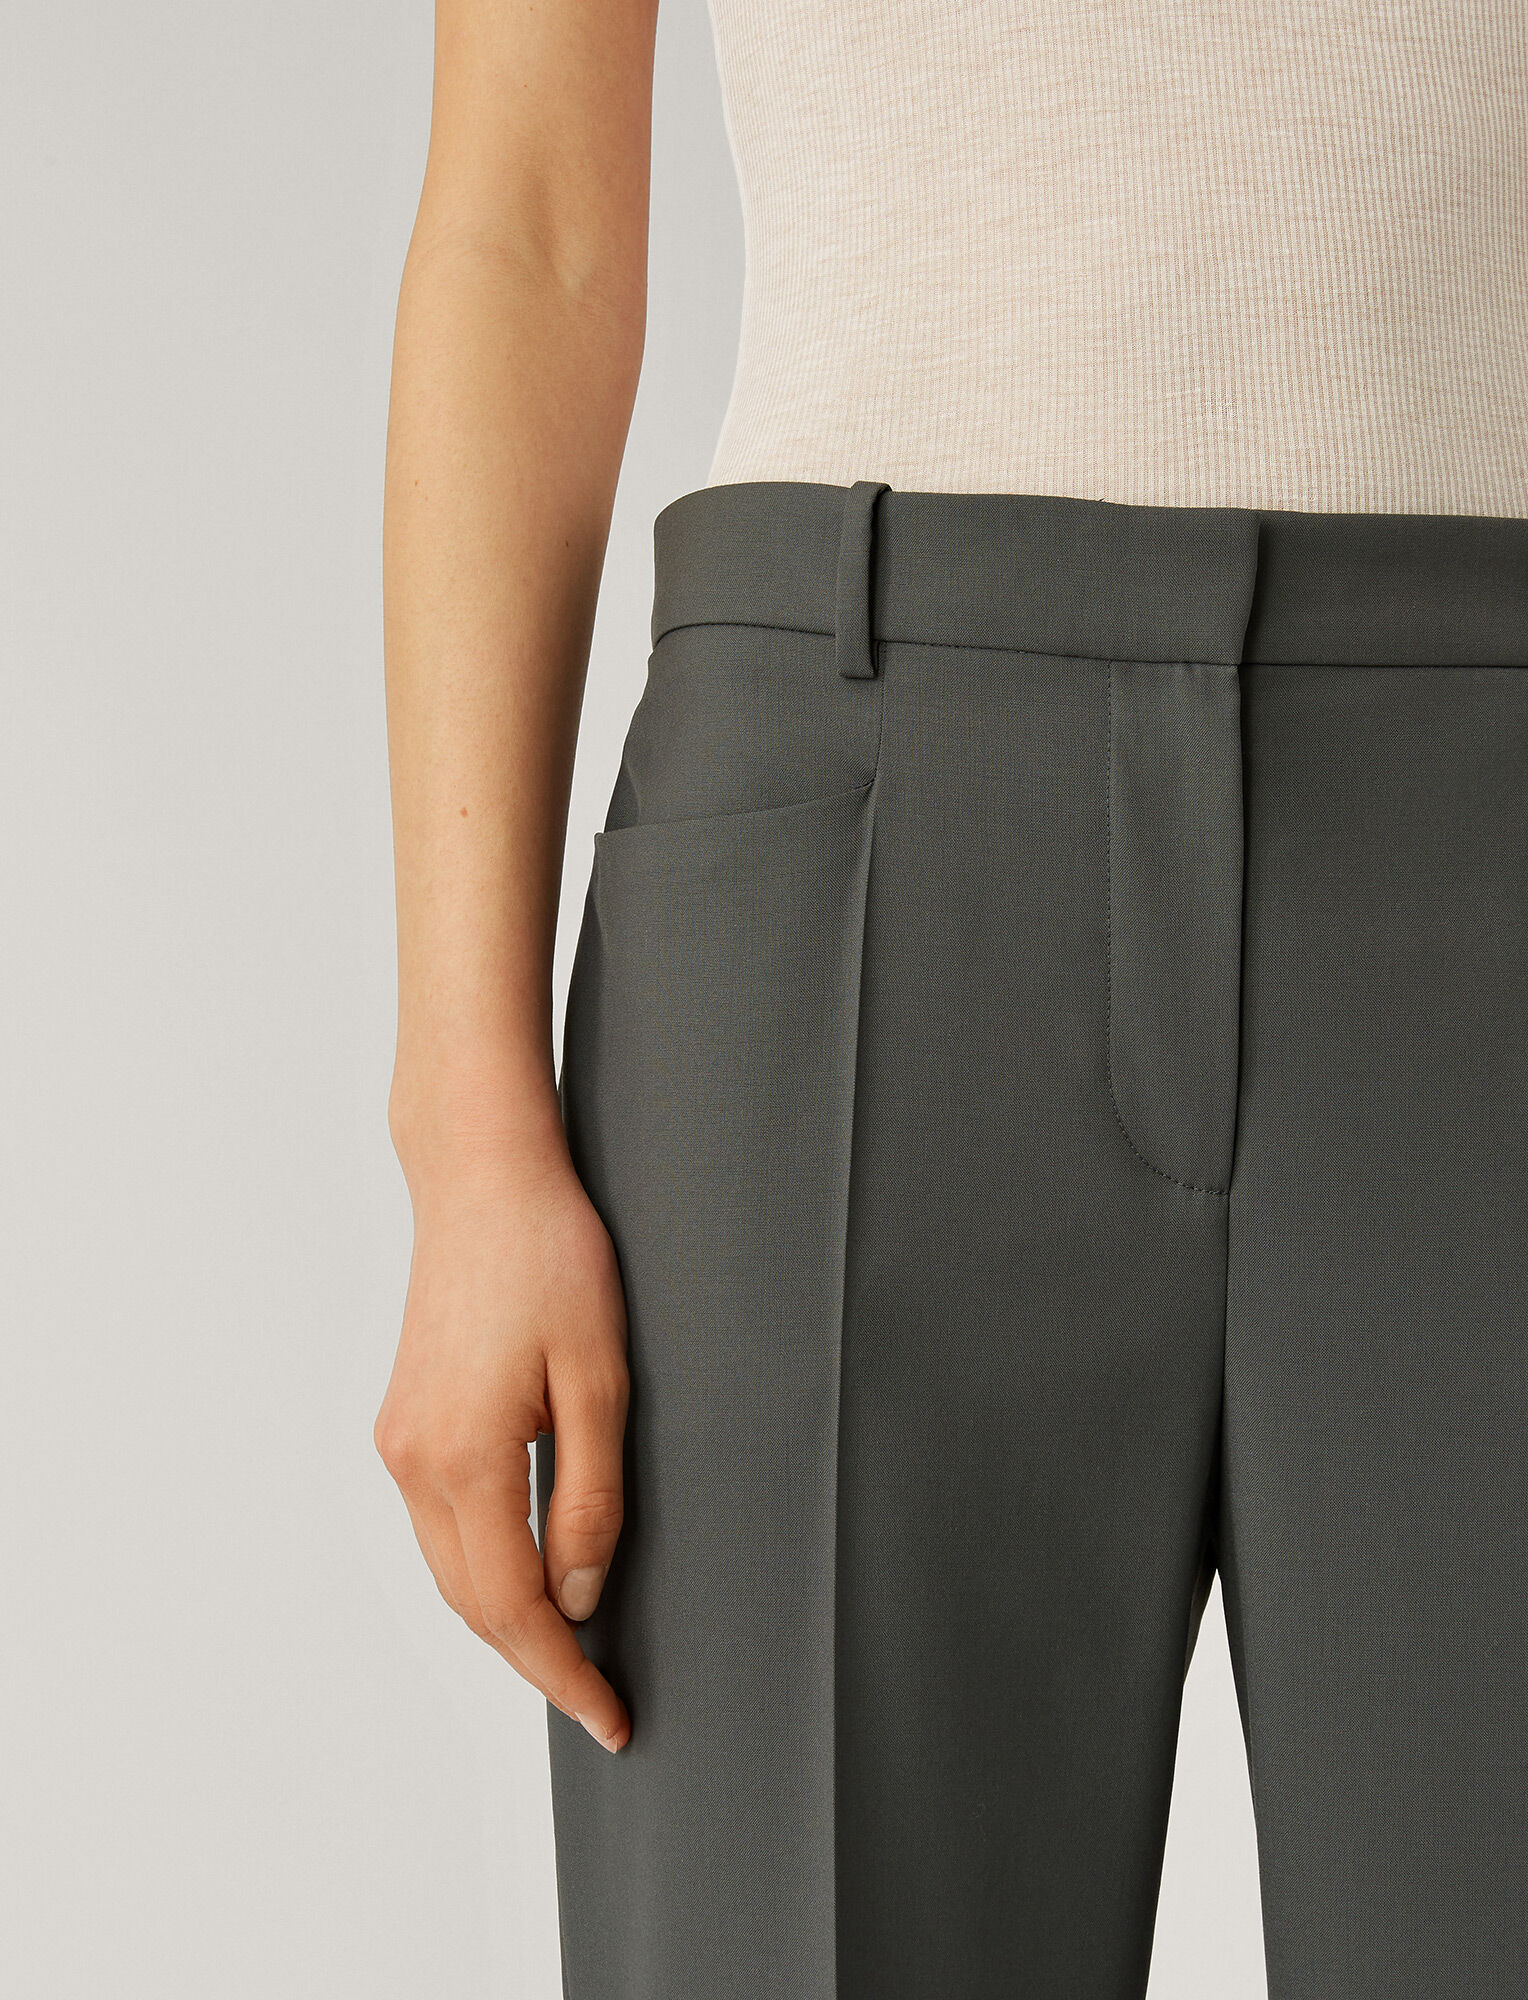 Joseph, Sloe Toile de Laine Trousers, in SLATE GREY